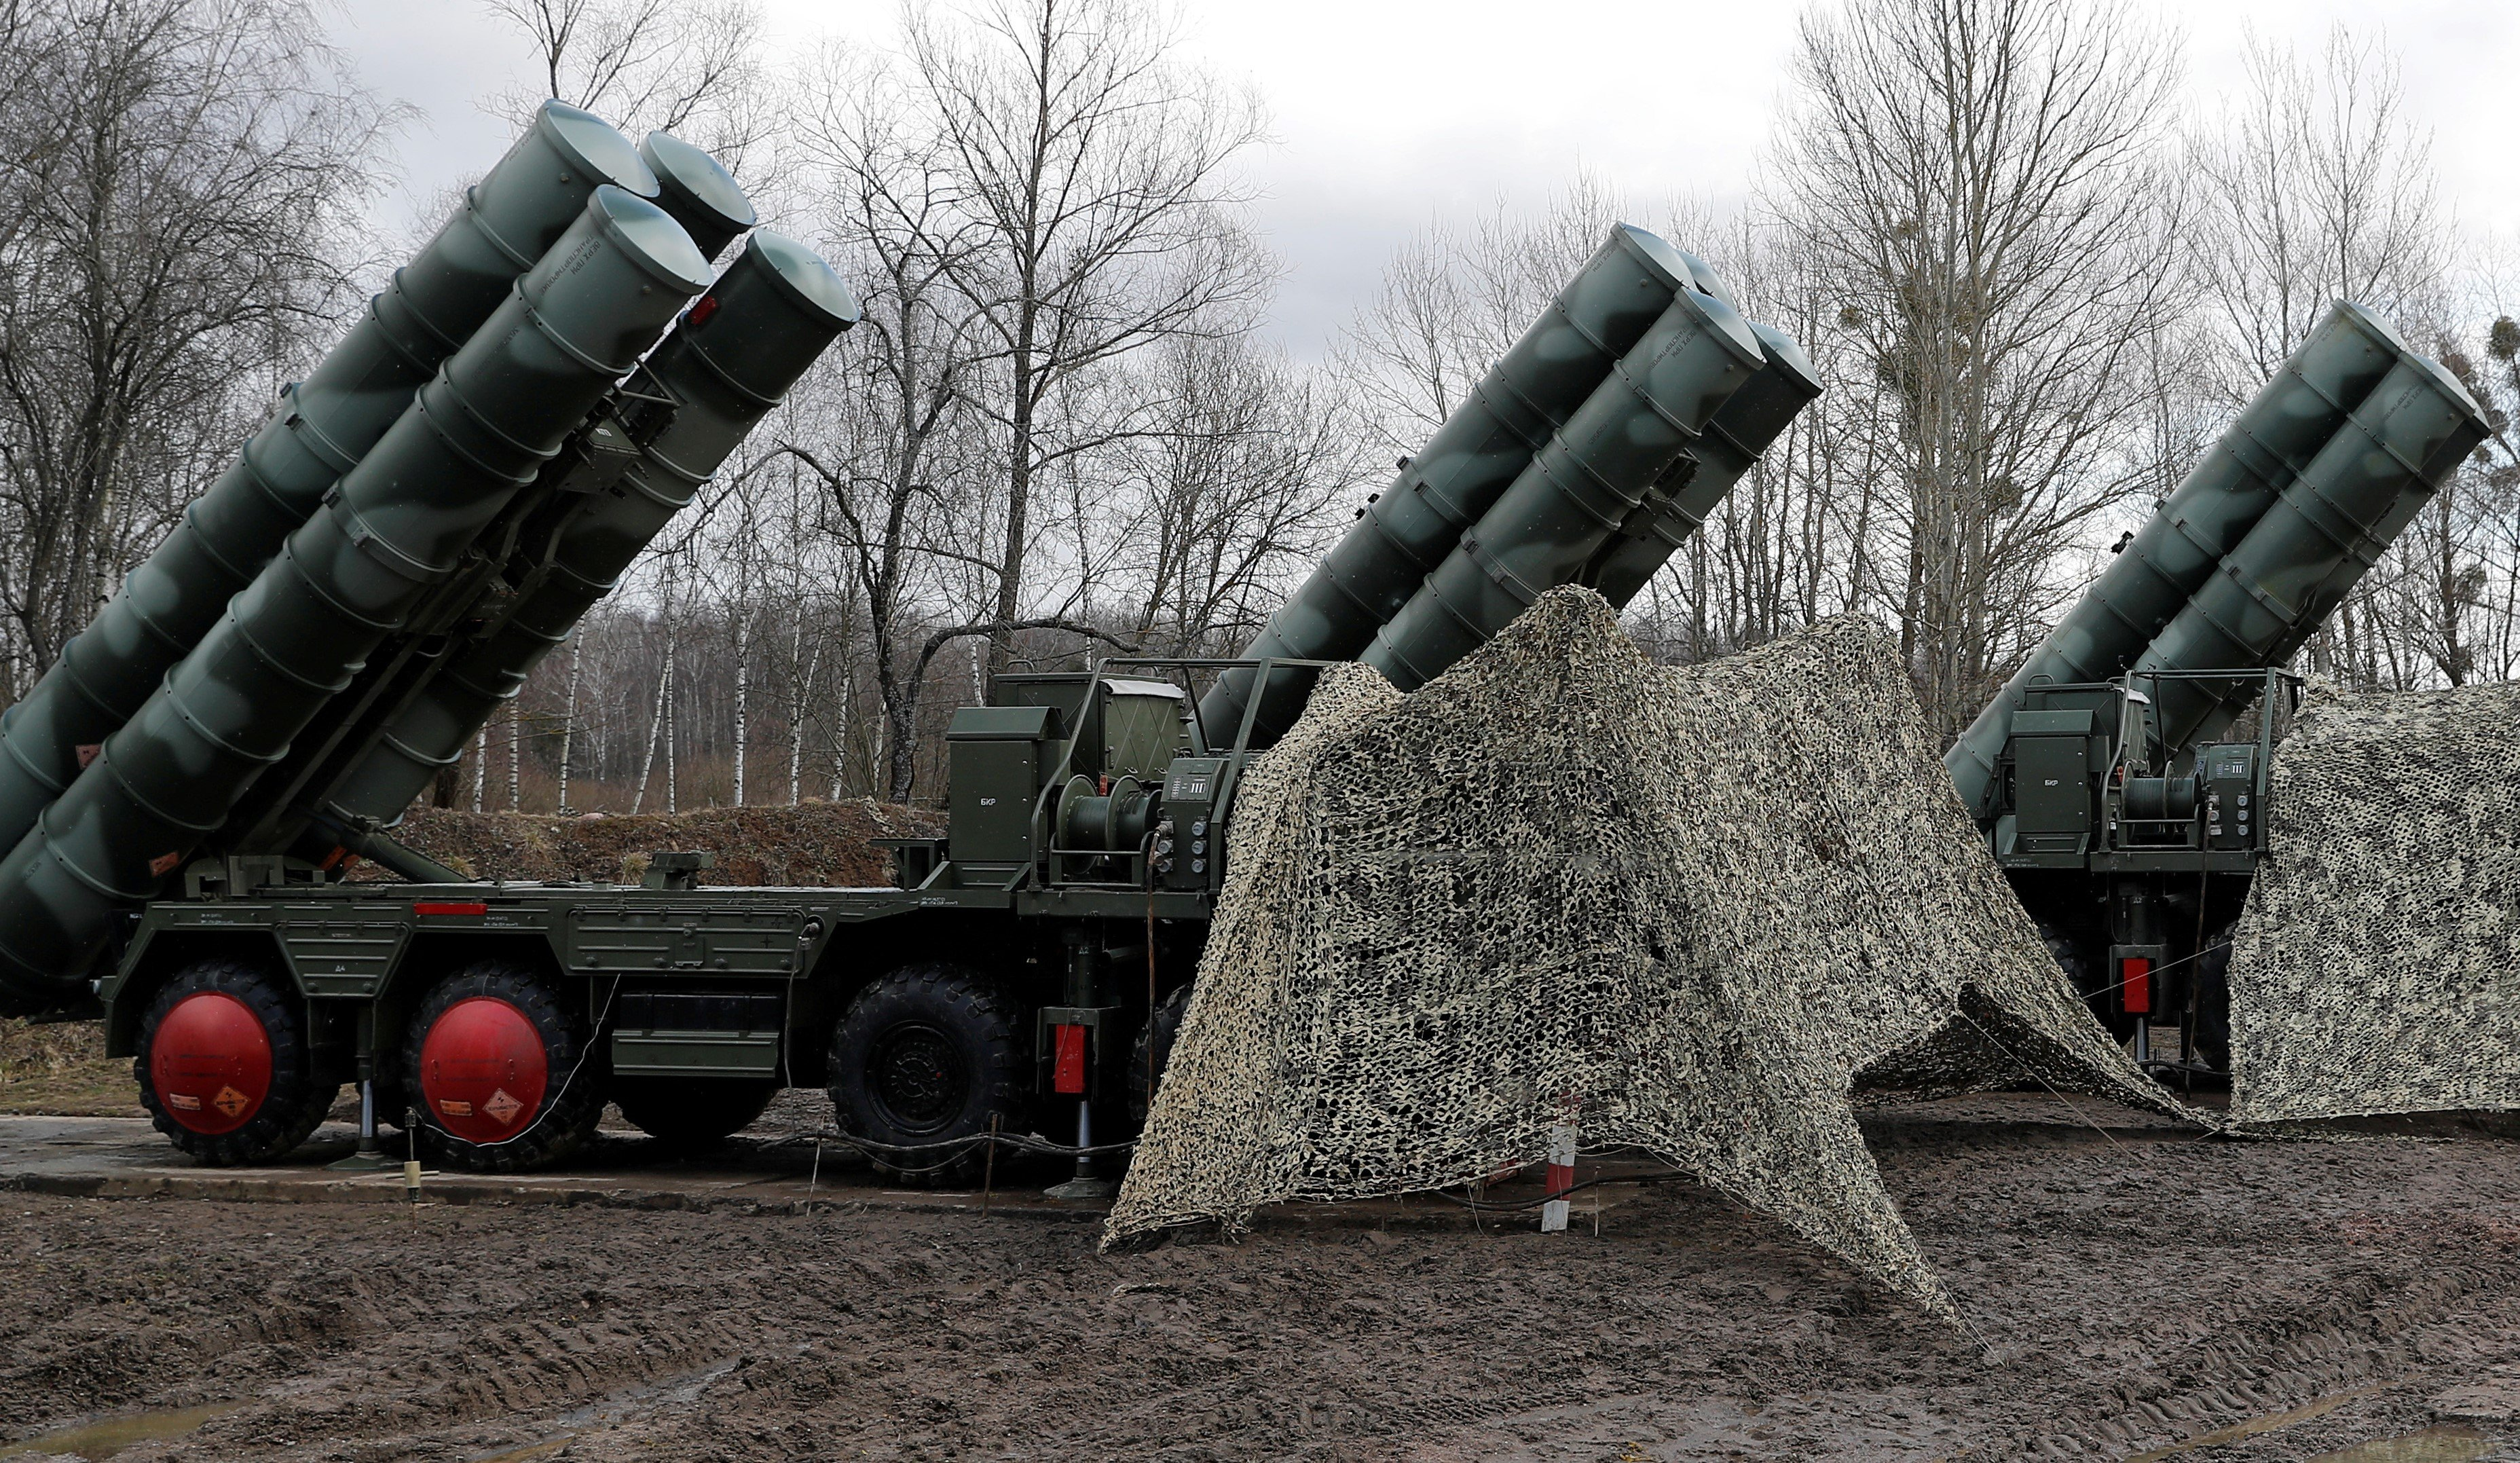 Turkey activated the S-400 missile system in defiance of Washington (Reuters)